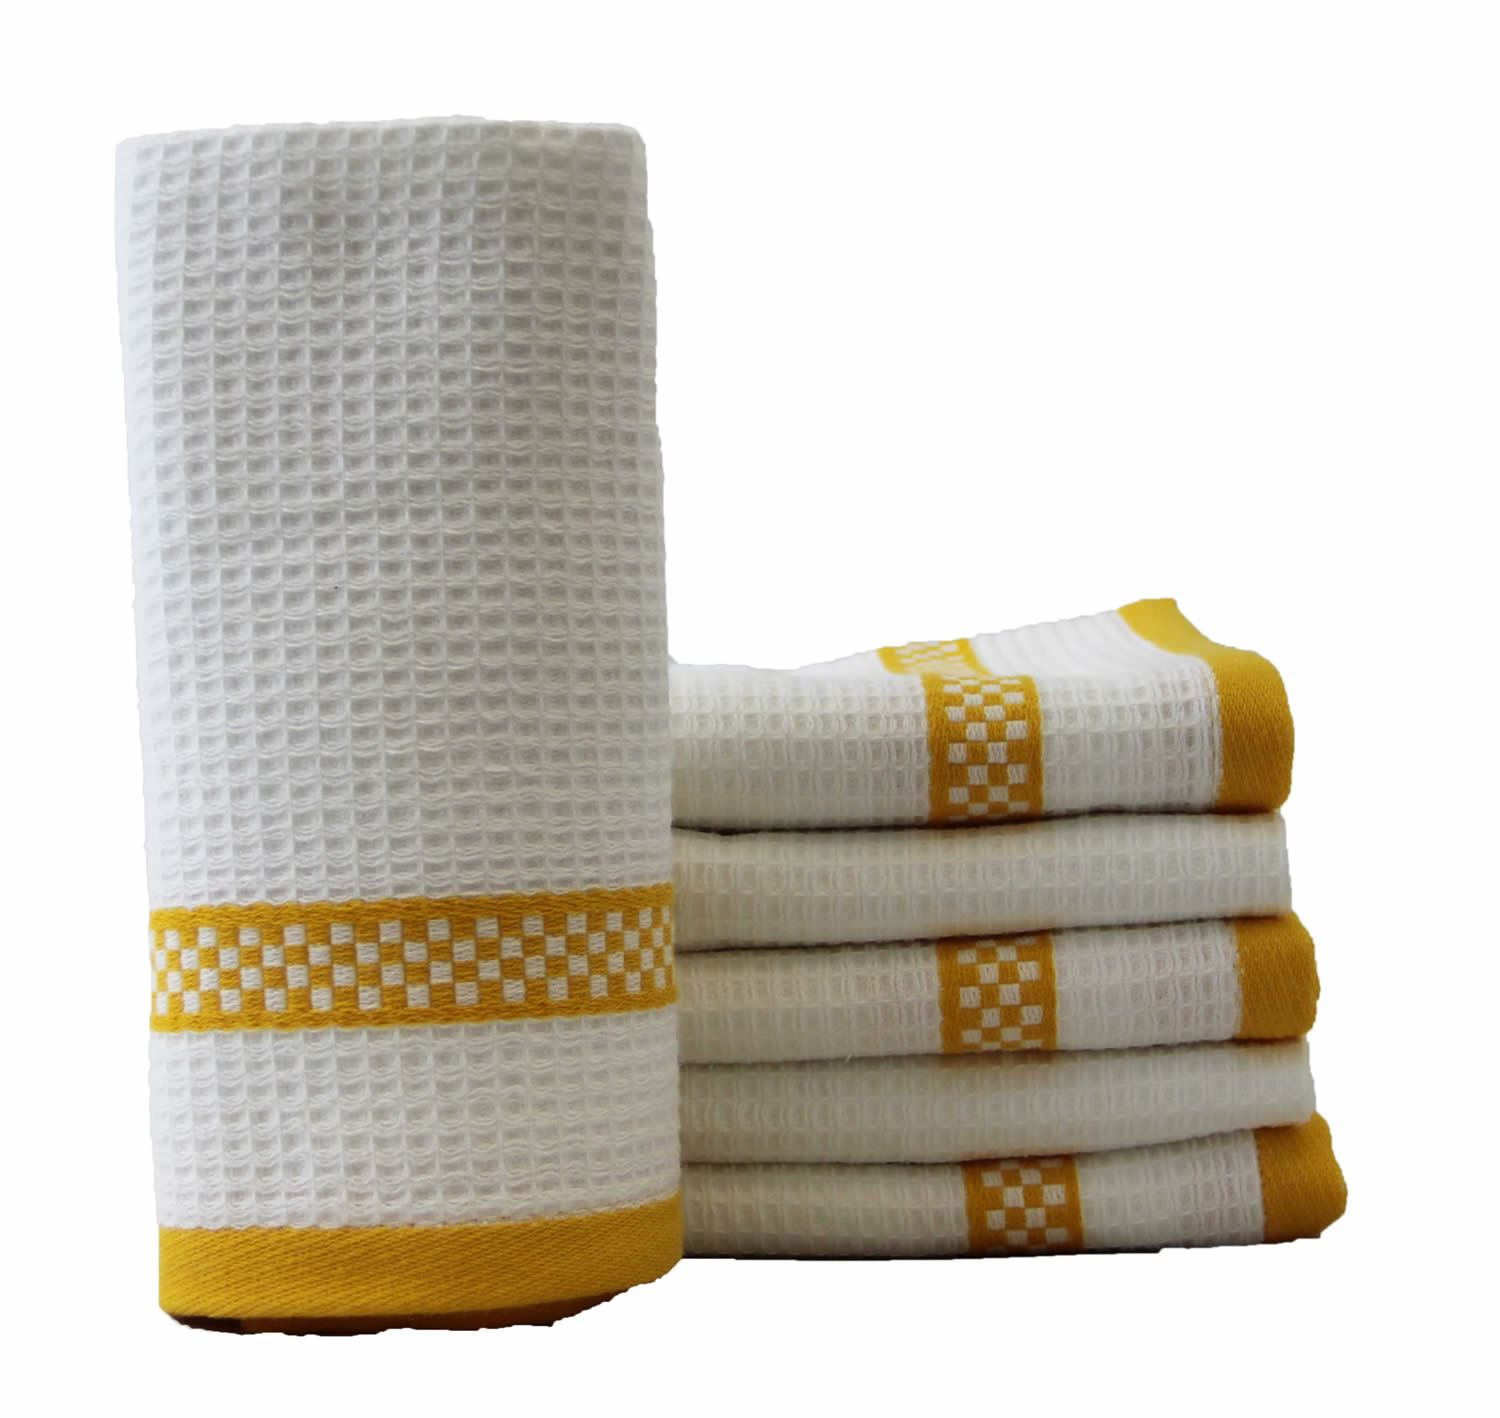 Sep 15,  · In general, tea towels are made with a simple weave, rather than a looped terry, and they are made in a hand towel size. Tea towels made from cotton are not uncommon, and a cotton tea towel tends to be much less costly, making it suitable for daily use.